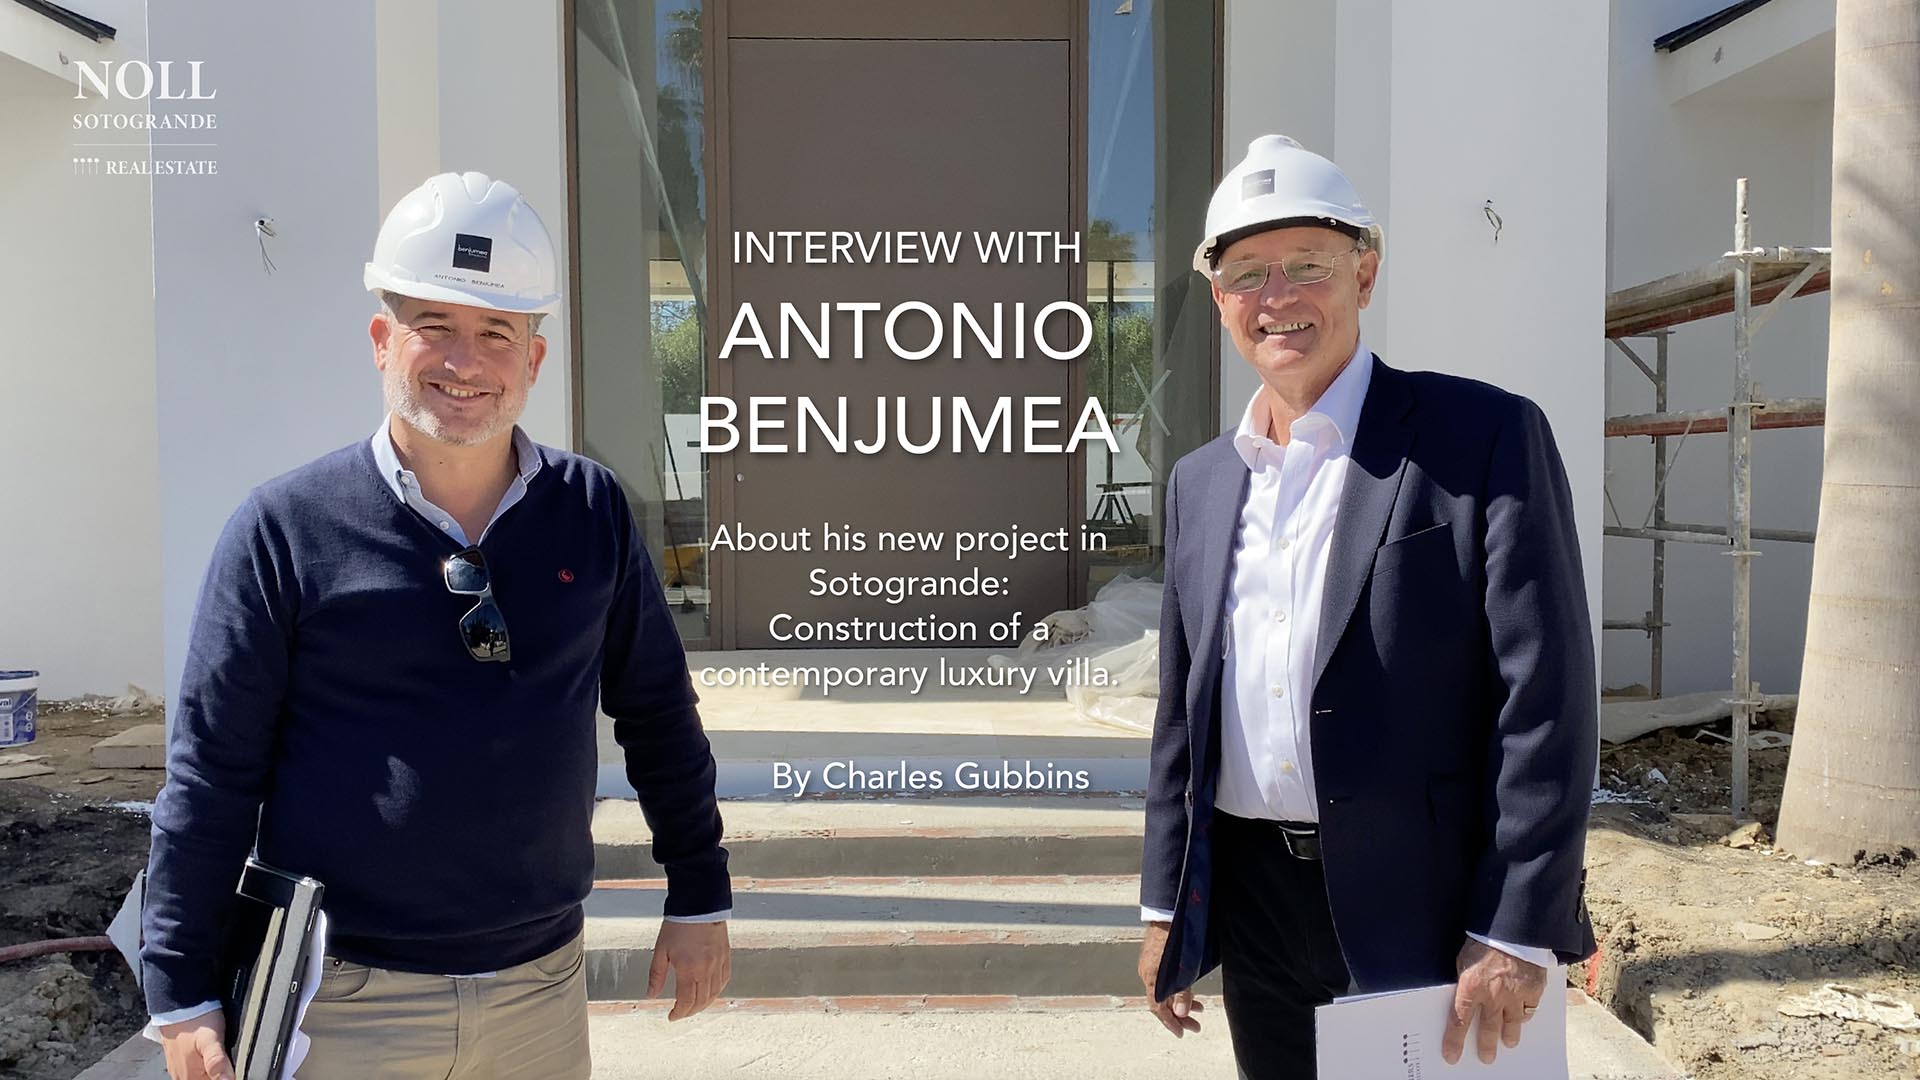 Benjumea Architects about the construction of a NEW LUXURY VILLA in Sotogrande, Spain.